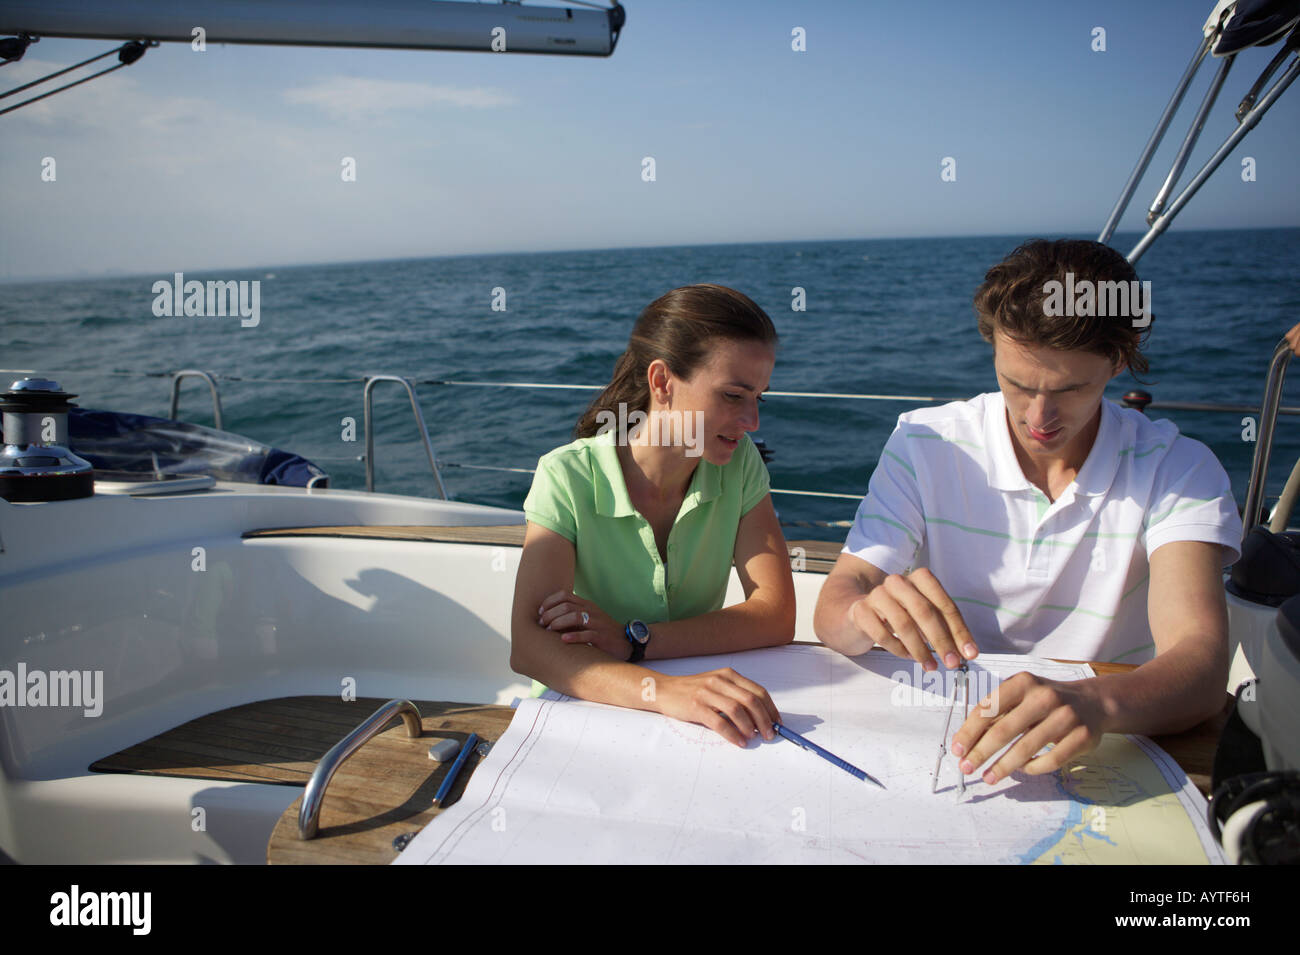 Two people working on a sea chart - Stock Image